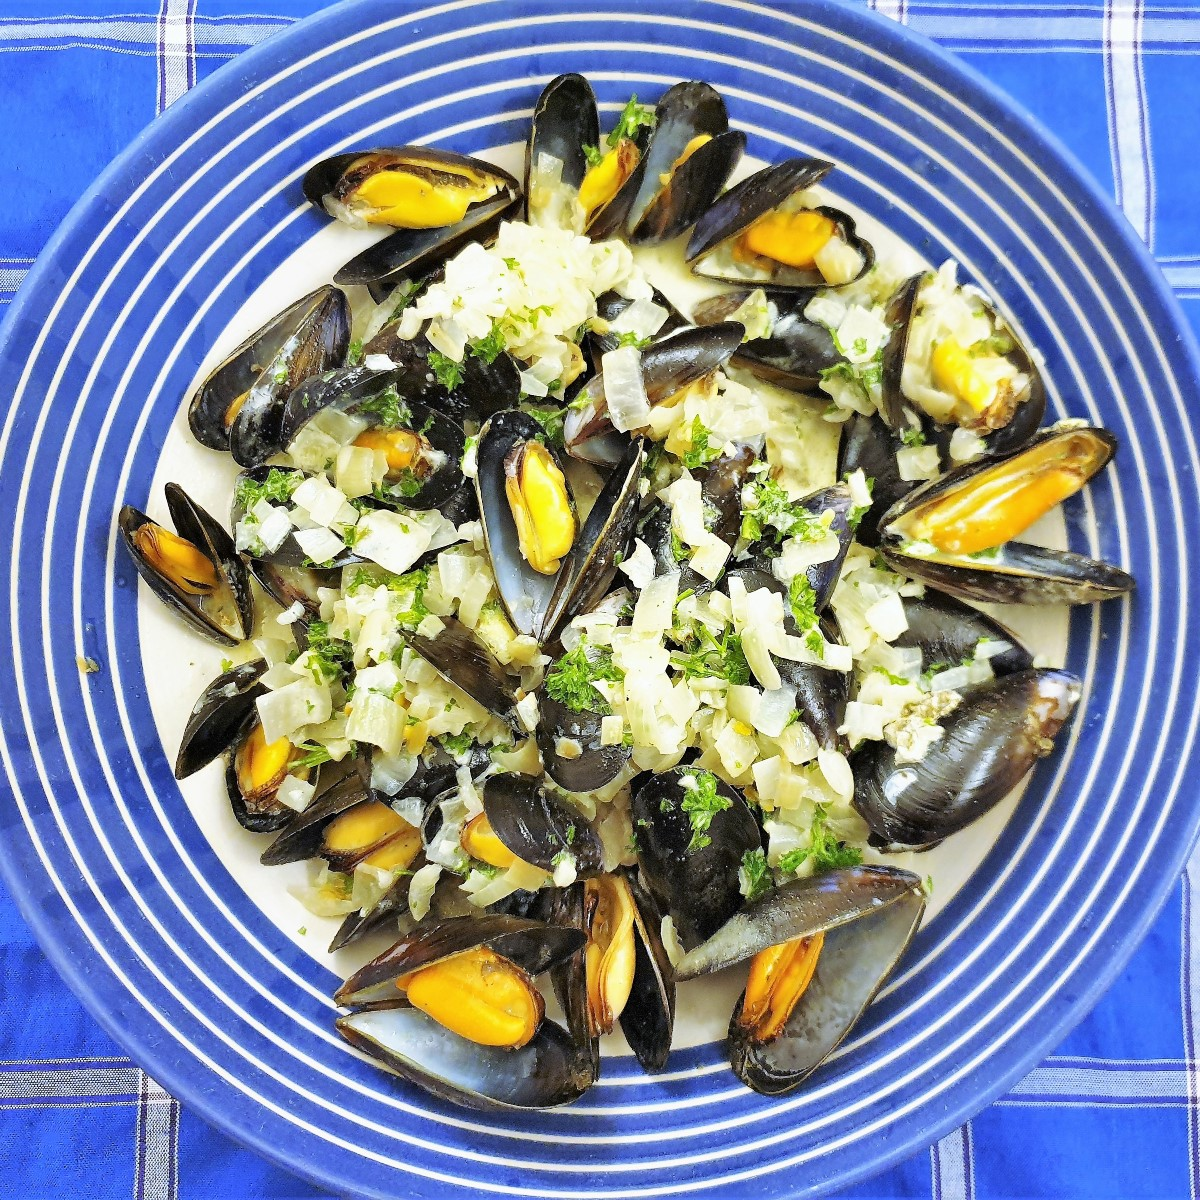 Overhead shot of a bowl of freshly cooked mussels.